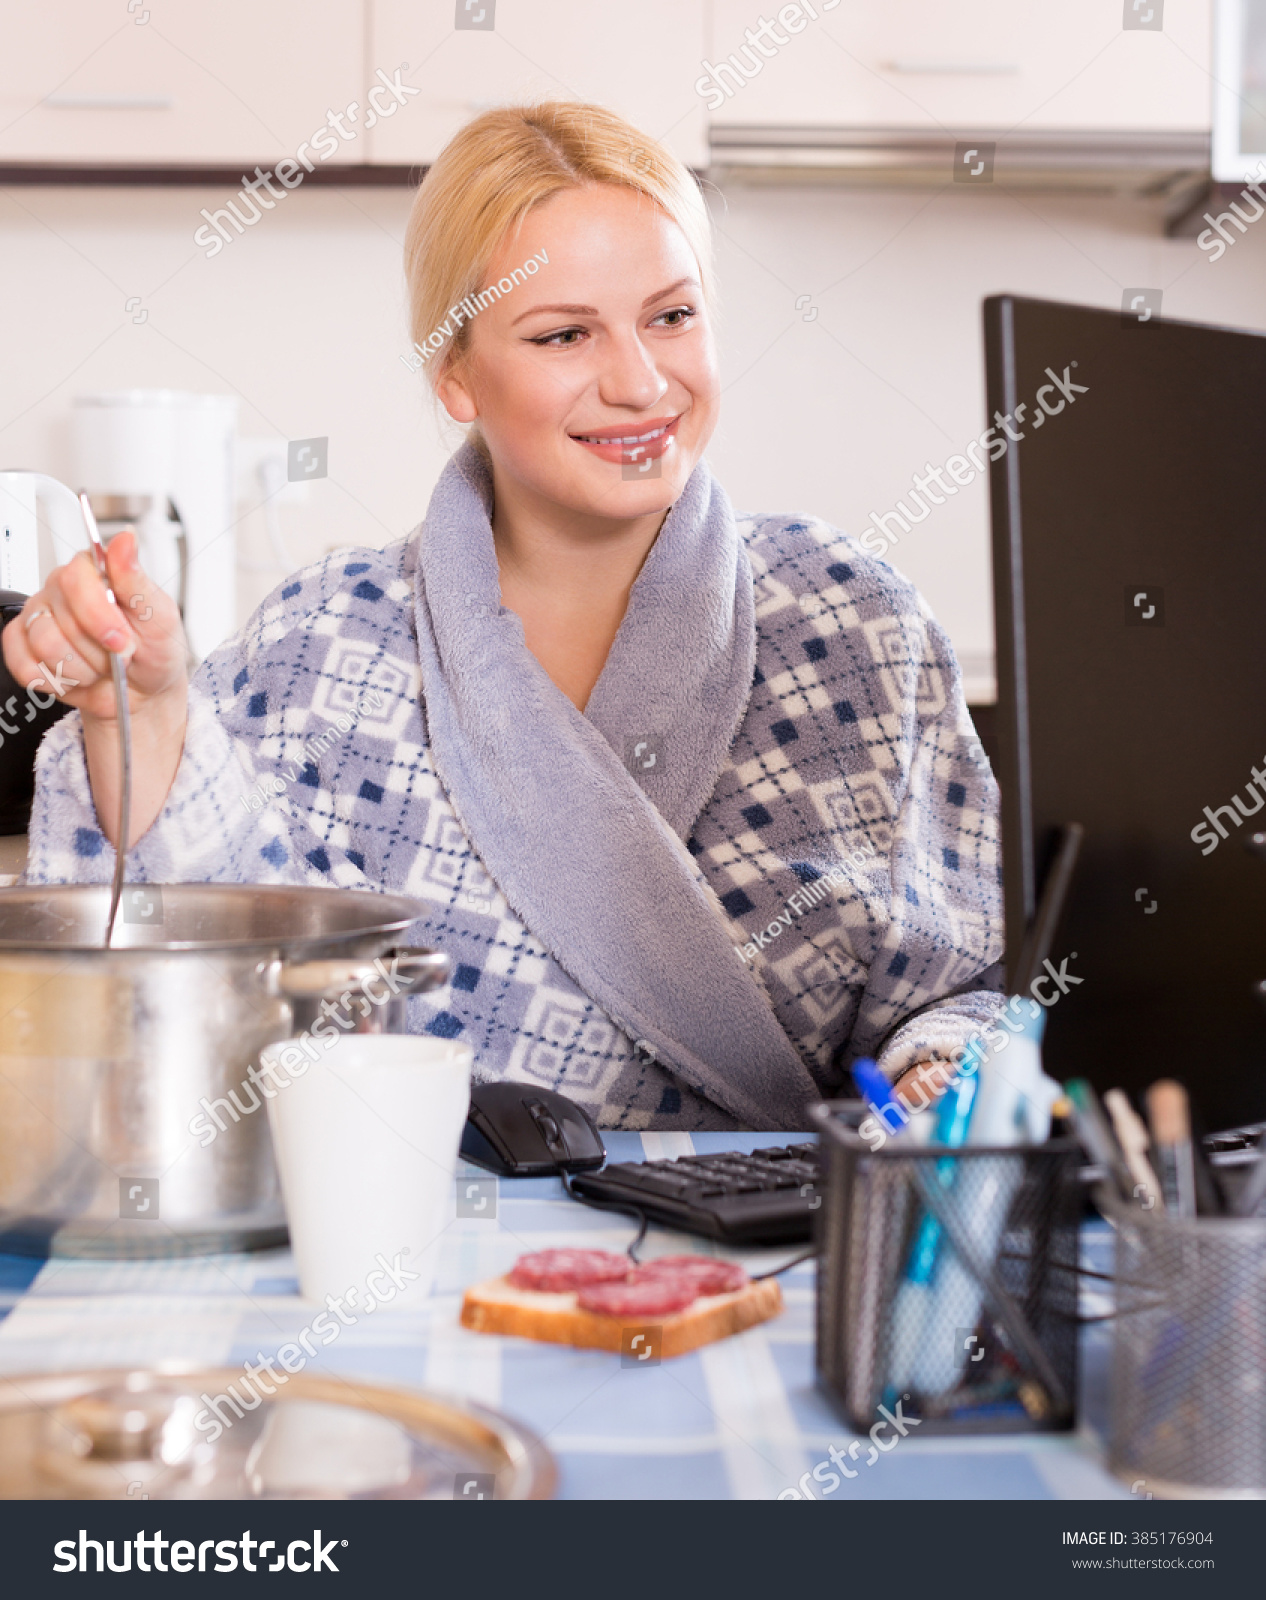 Positive Smiling Woman Dressing Gown Working Stock Photo (Royalty ...